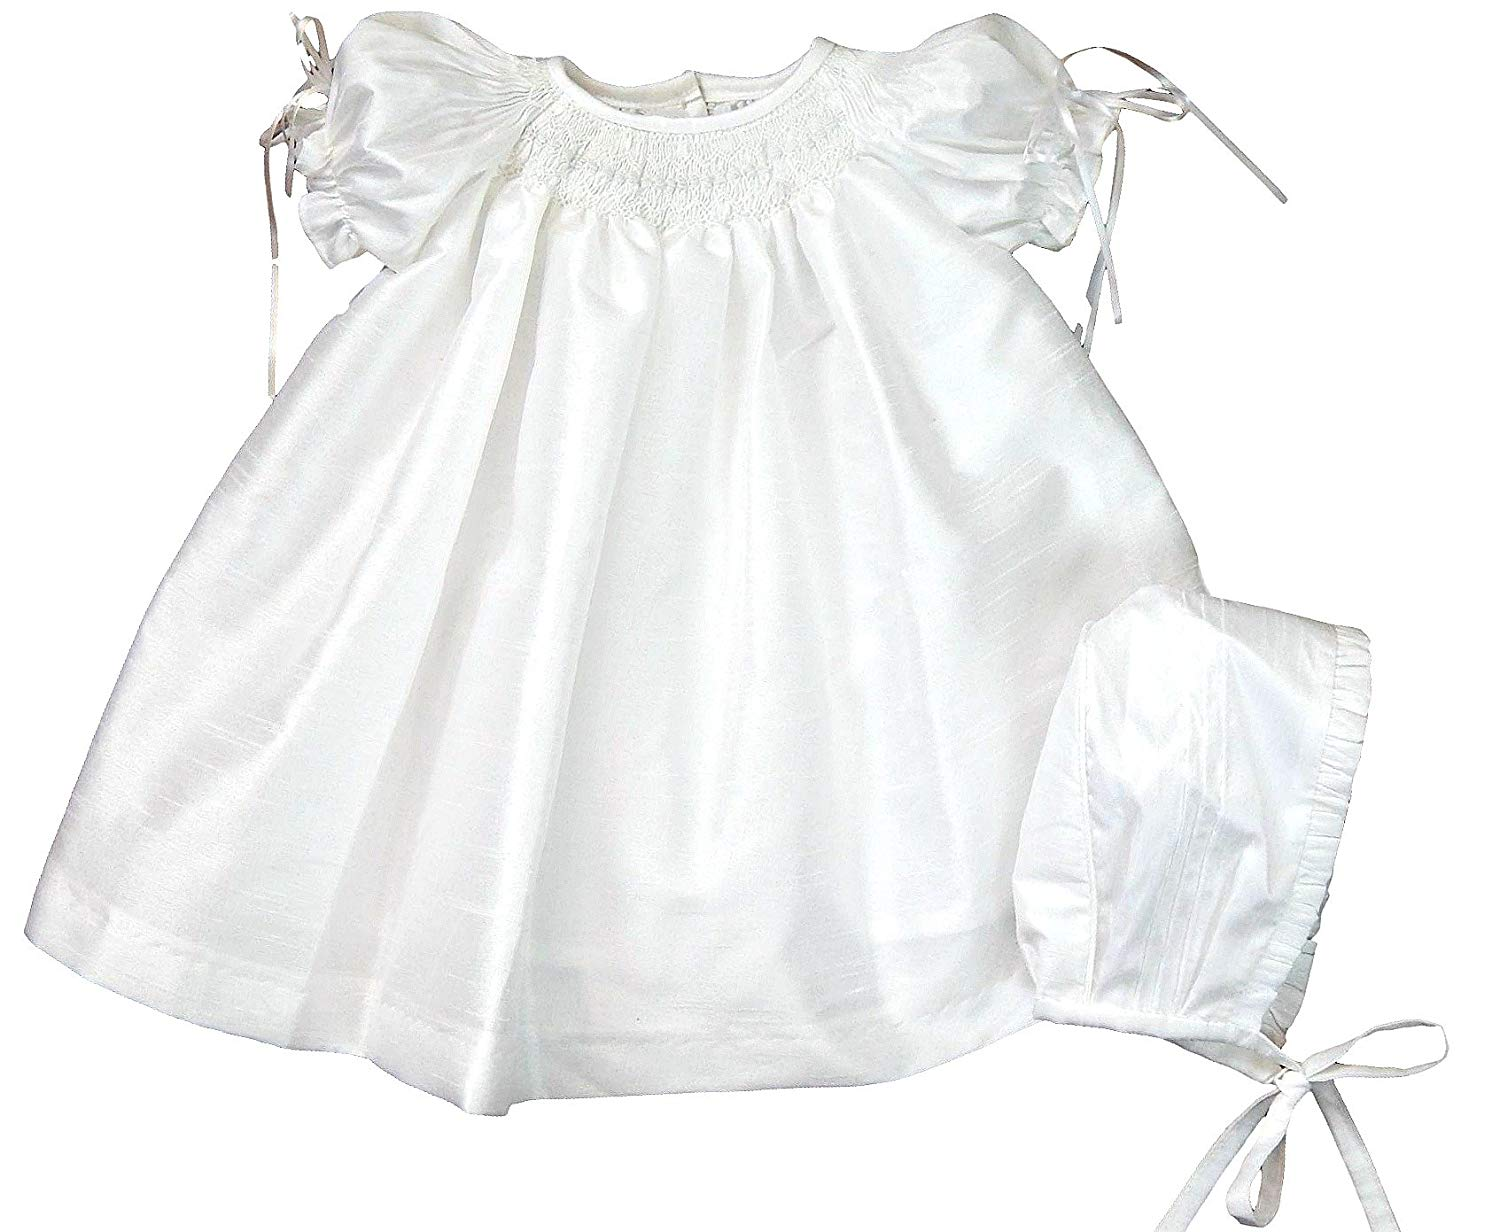 45a20acb5 Get Quotations · Suma White Shantung Smocked Baby Girl Dress With Bonnet Christening  Baptism Baby Girl Outfit